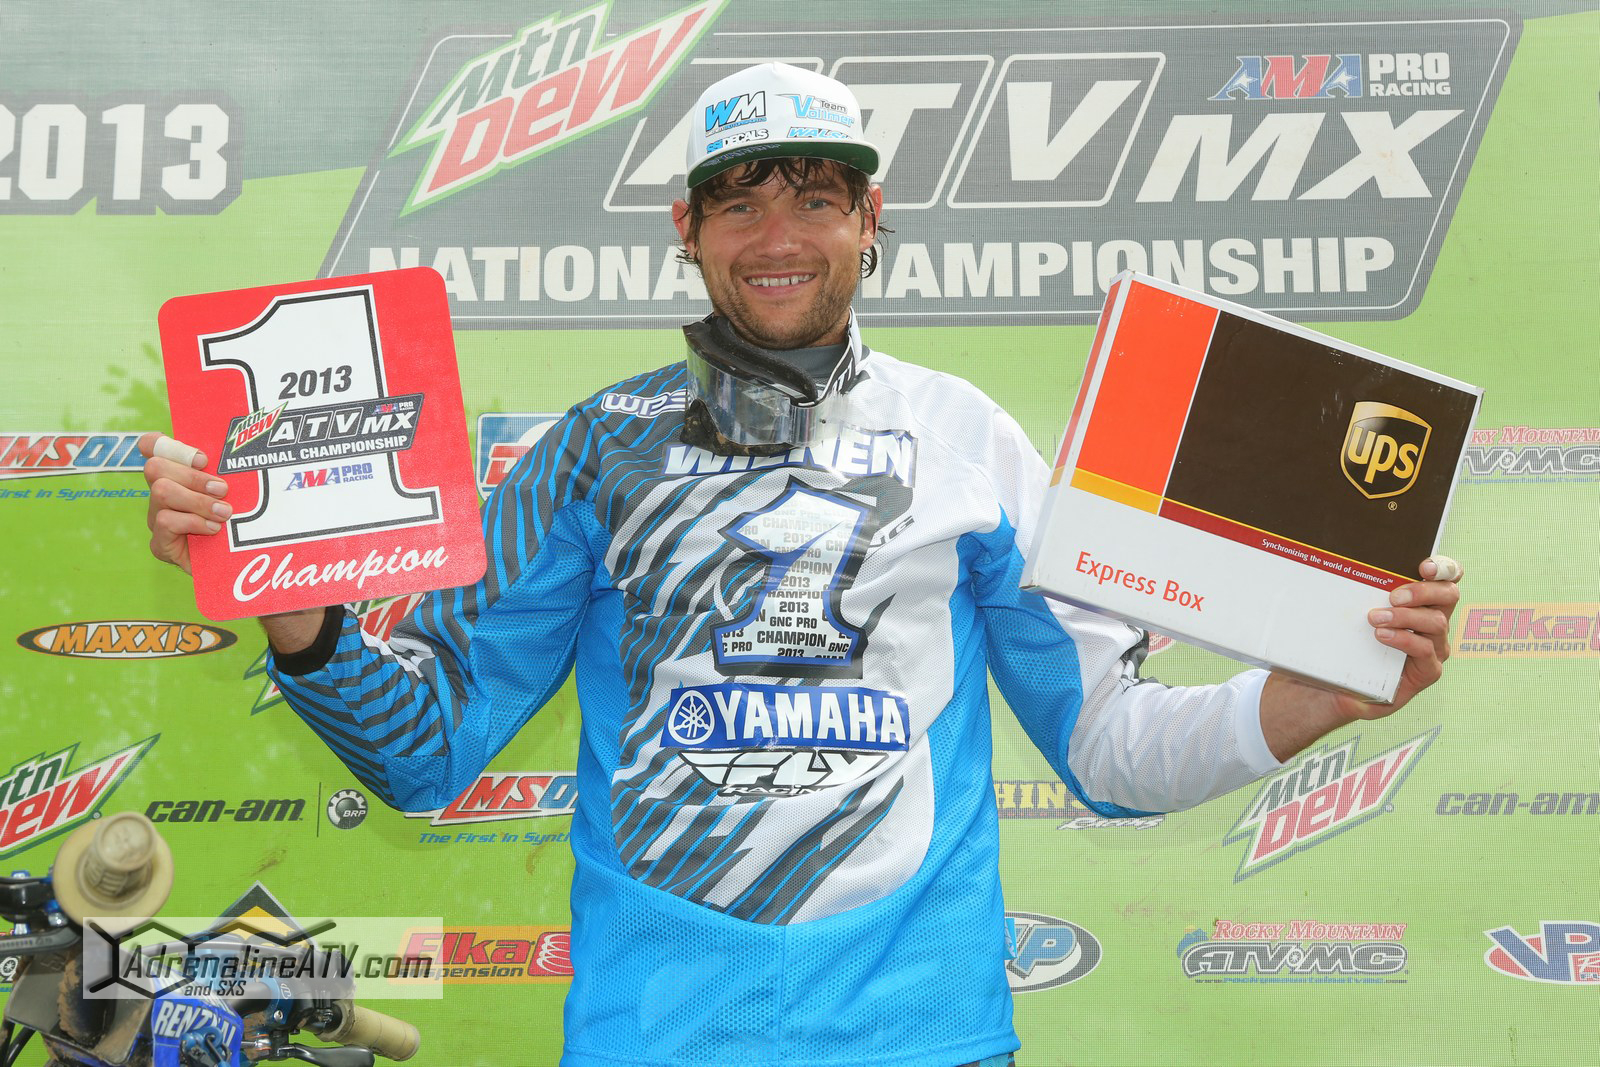 In his second year aboard a Yamaha YFZ450R, Chad Wienen was able to clinch the 2013 ATV MX National Championship at Red Bud MX